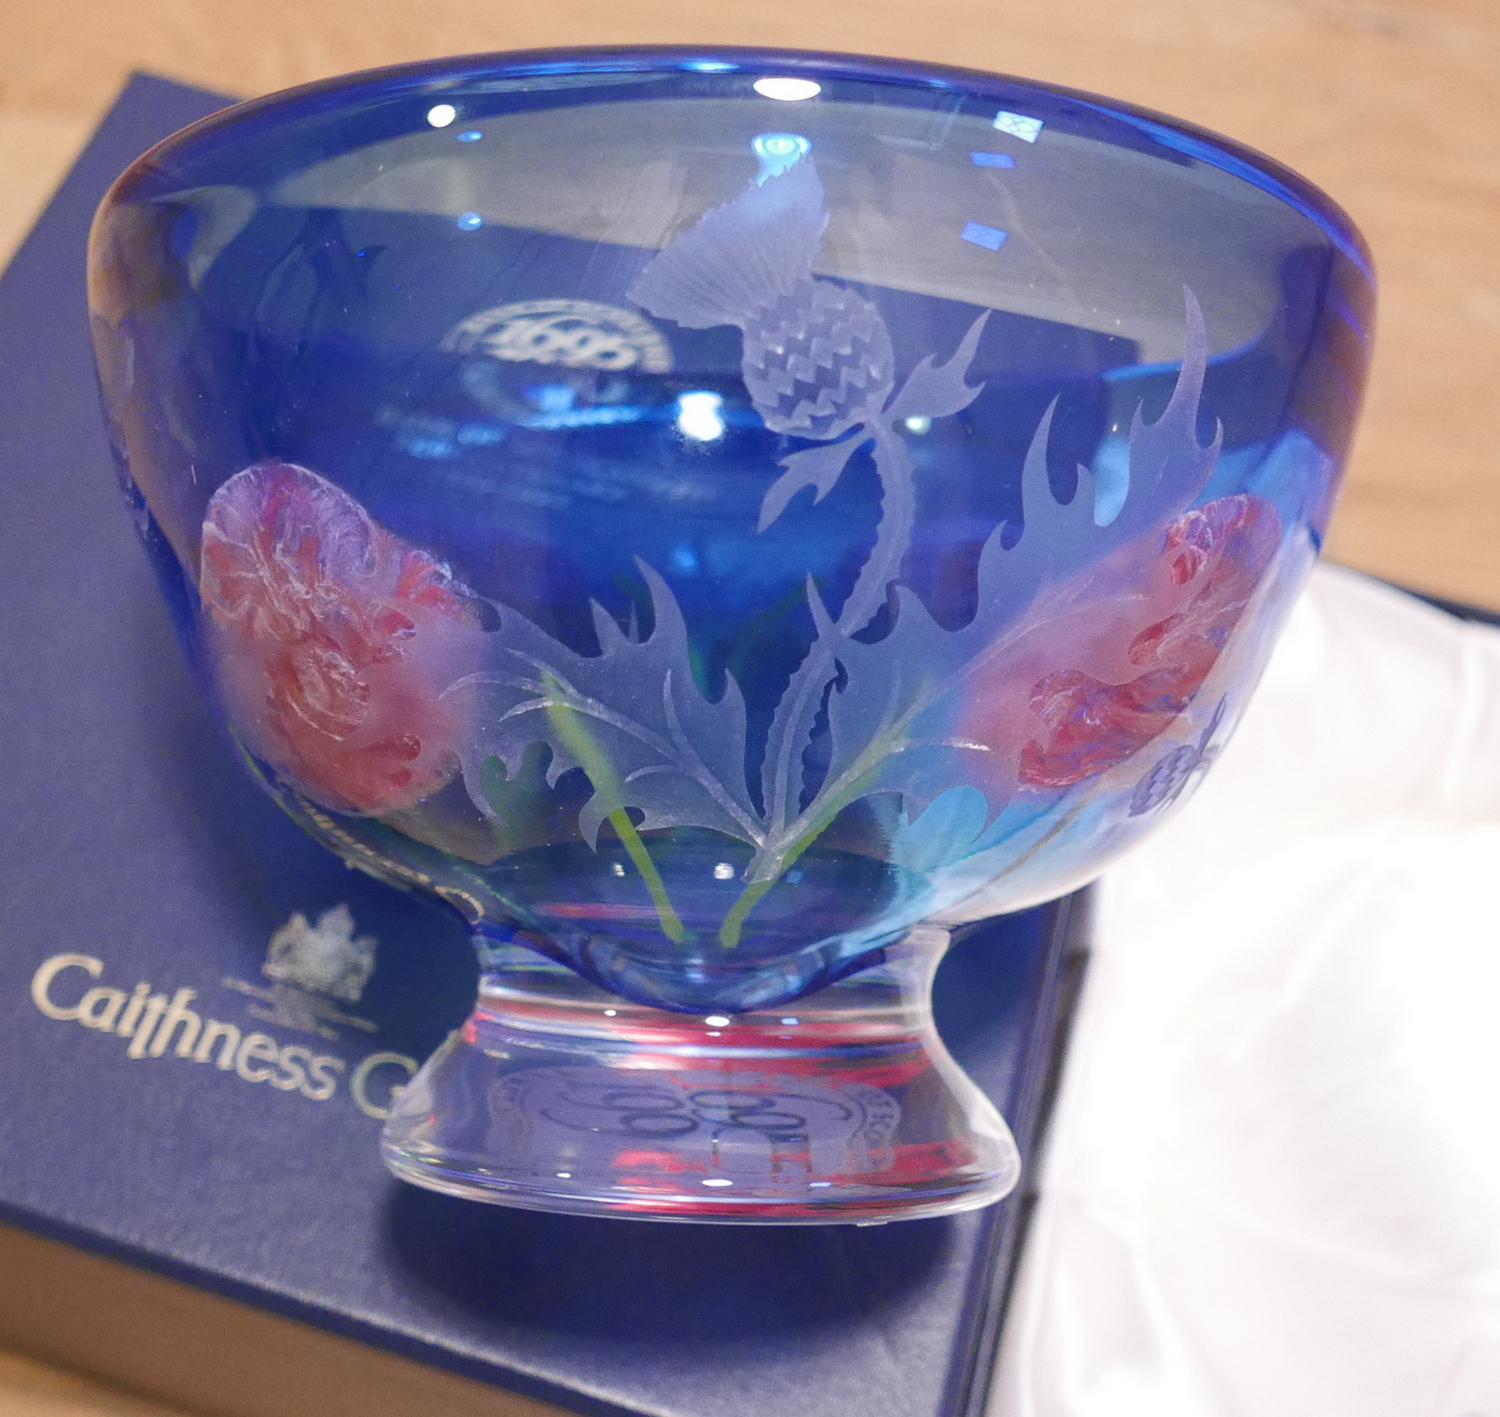 "Lot 81 - Boxed Caithness Glass Bank of Scotland Tercentenary Thistle Rose Bowl 1695-1995 - 8 1/2"" dia."